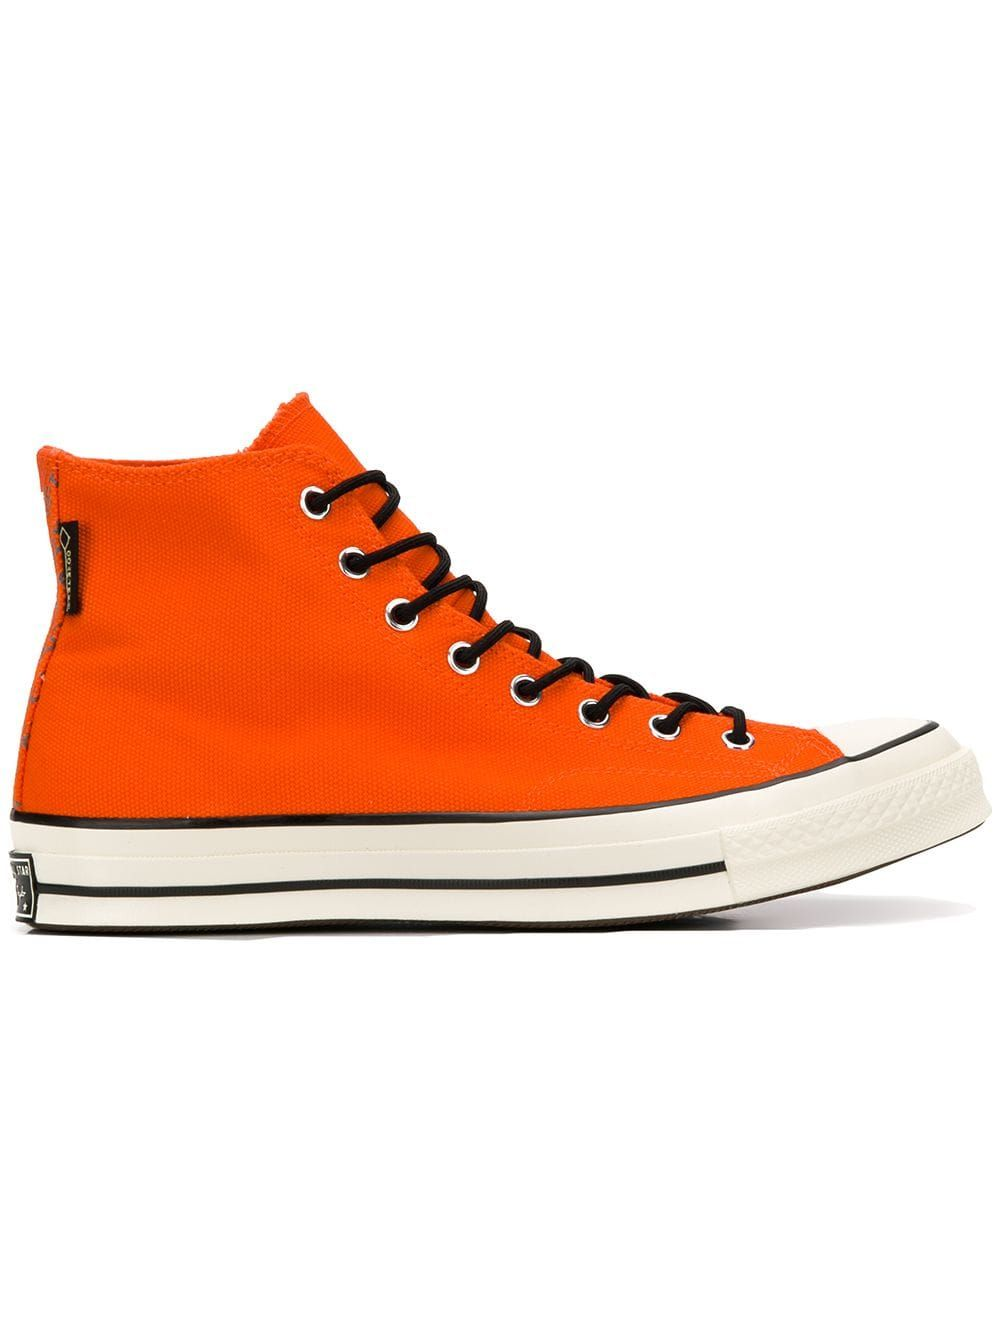 4d969fd35e3f CONVERSE CONVERSE ALL STAR 70 GORETEX HI-TOPS - ORANGE.  converse  shoes